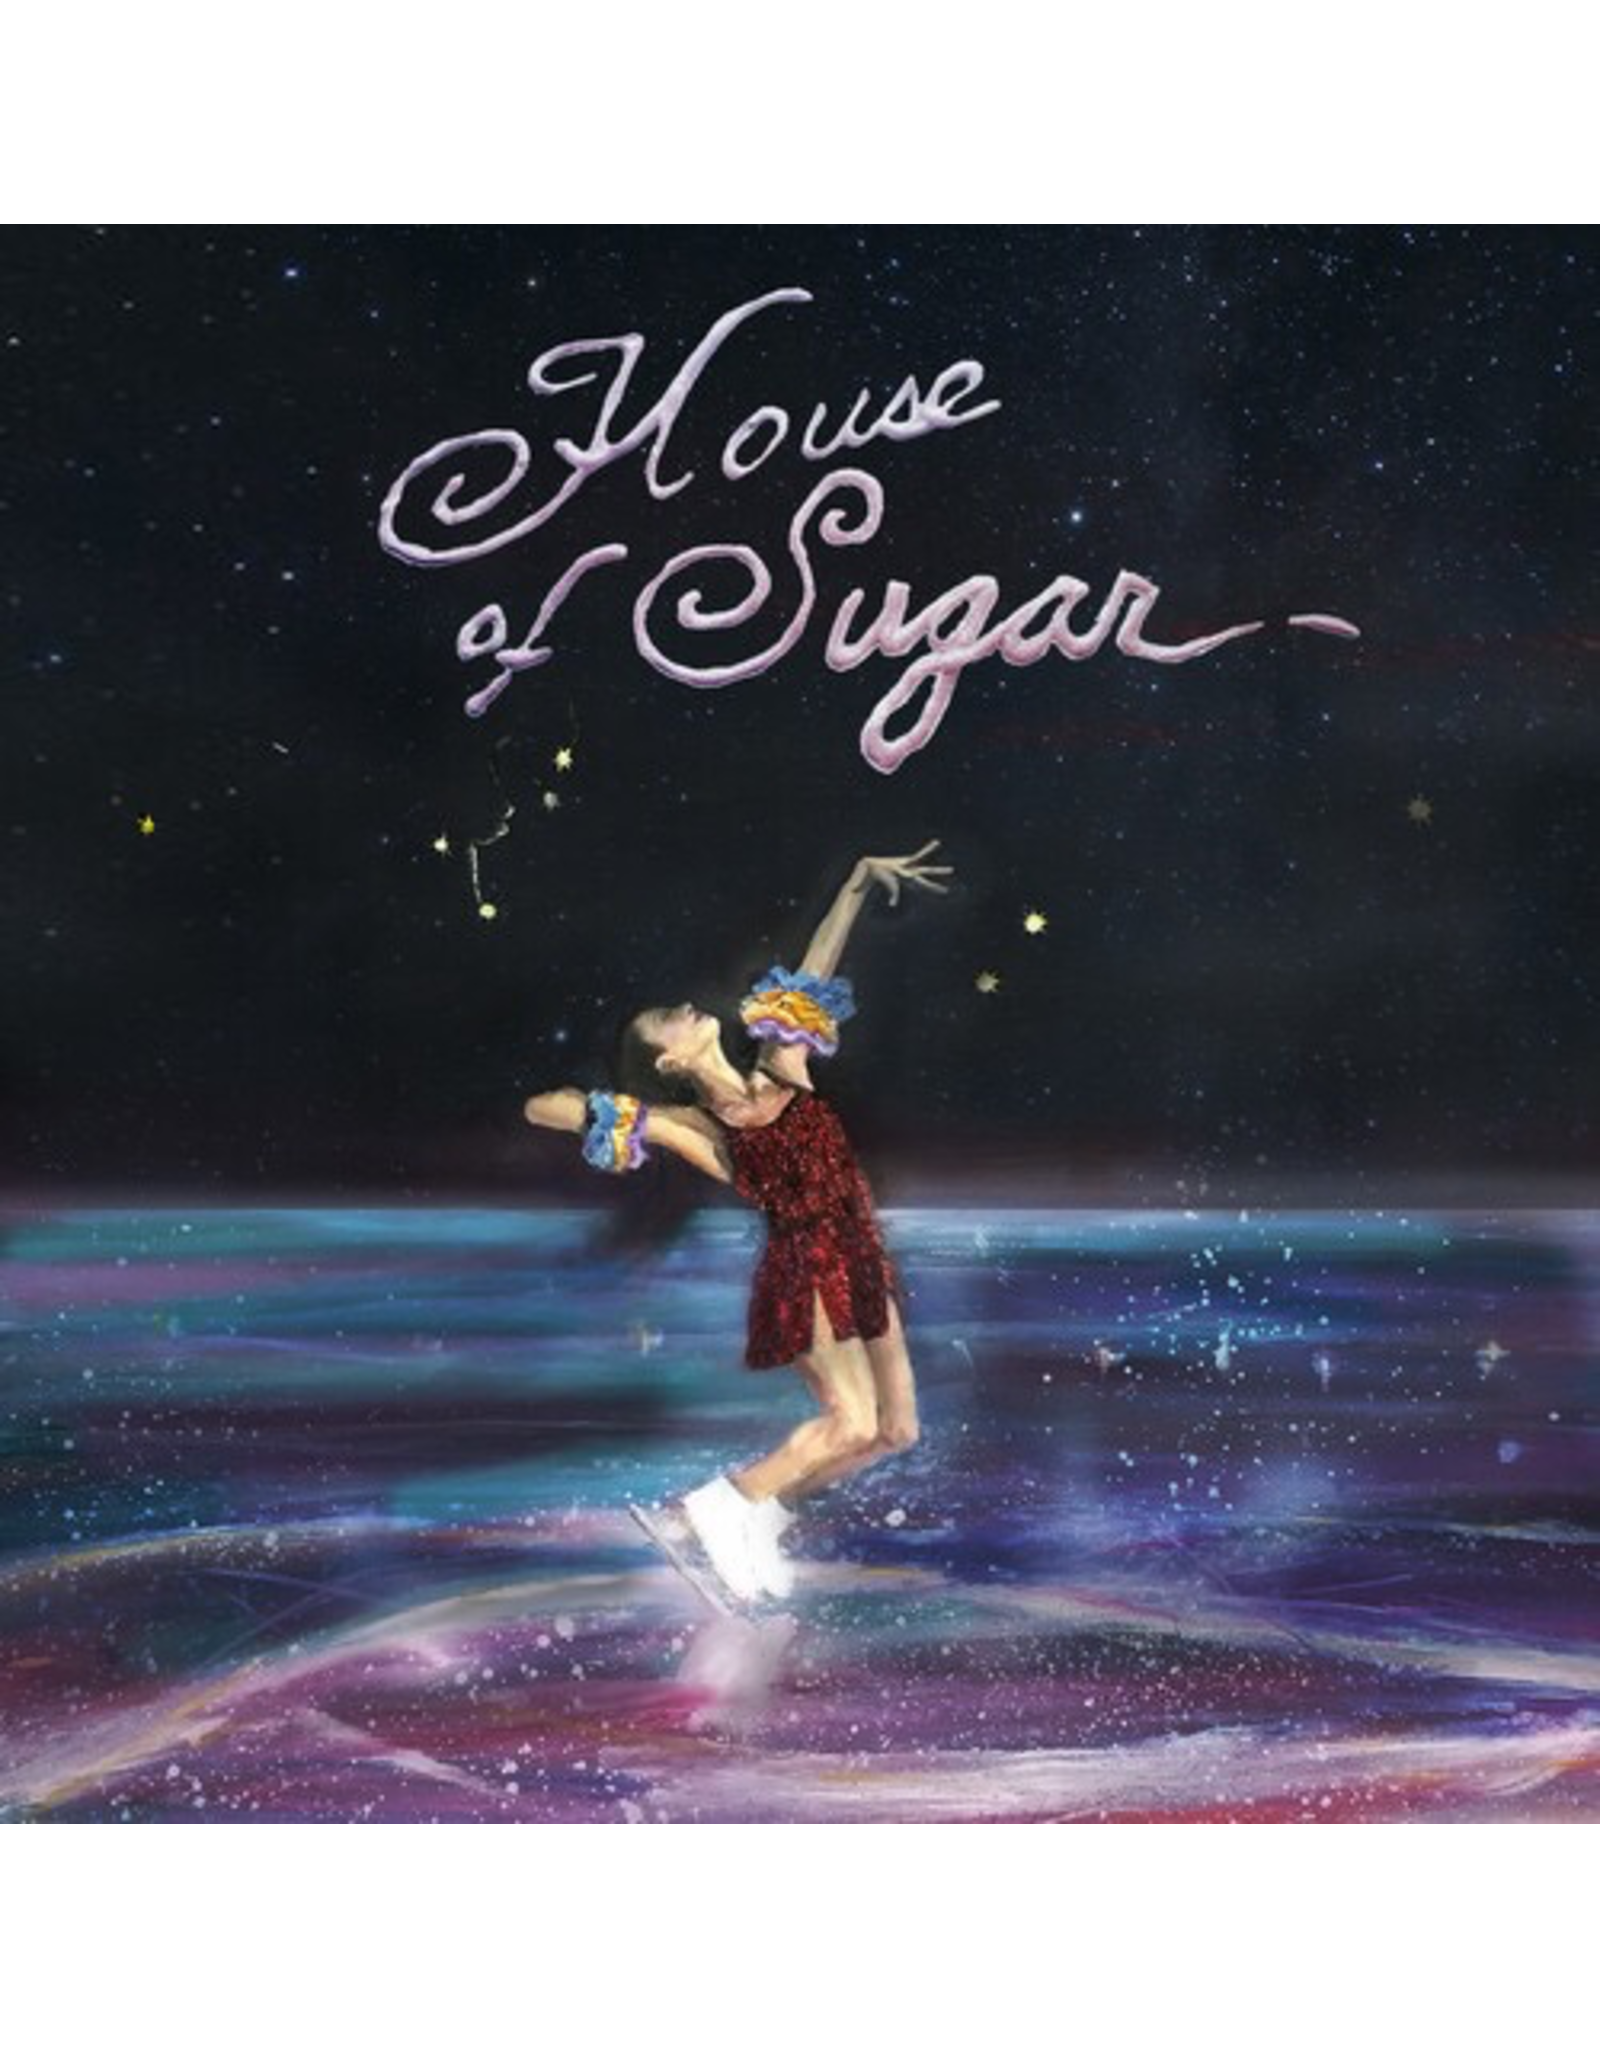 New Vinyl (Sandy) Alex G - House Of Sugar LP